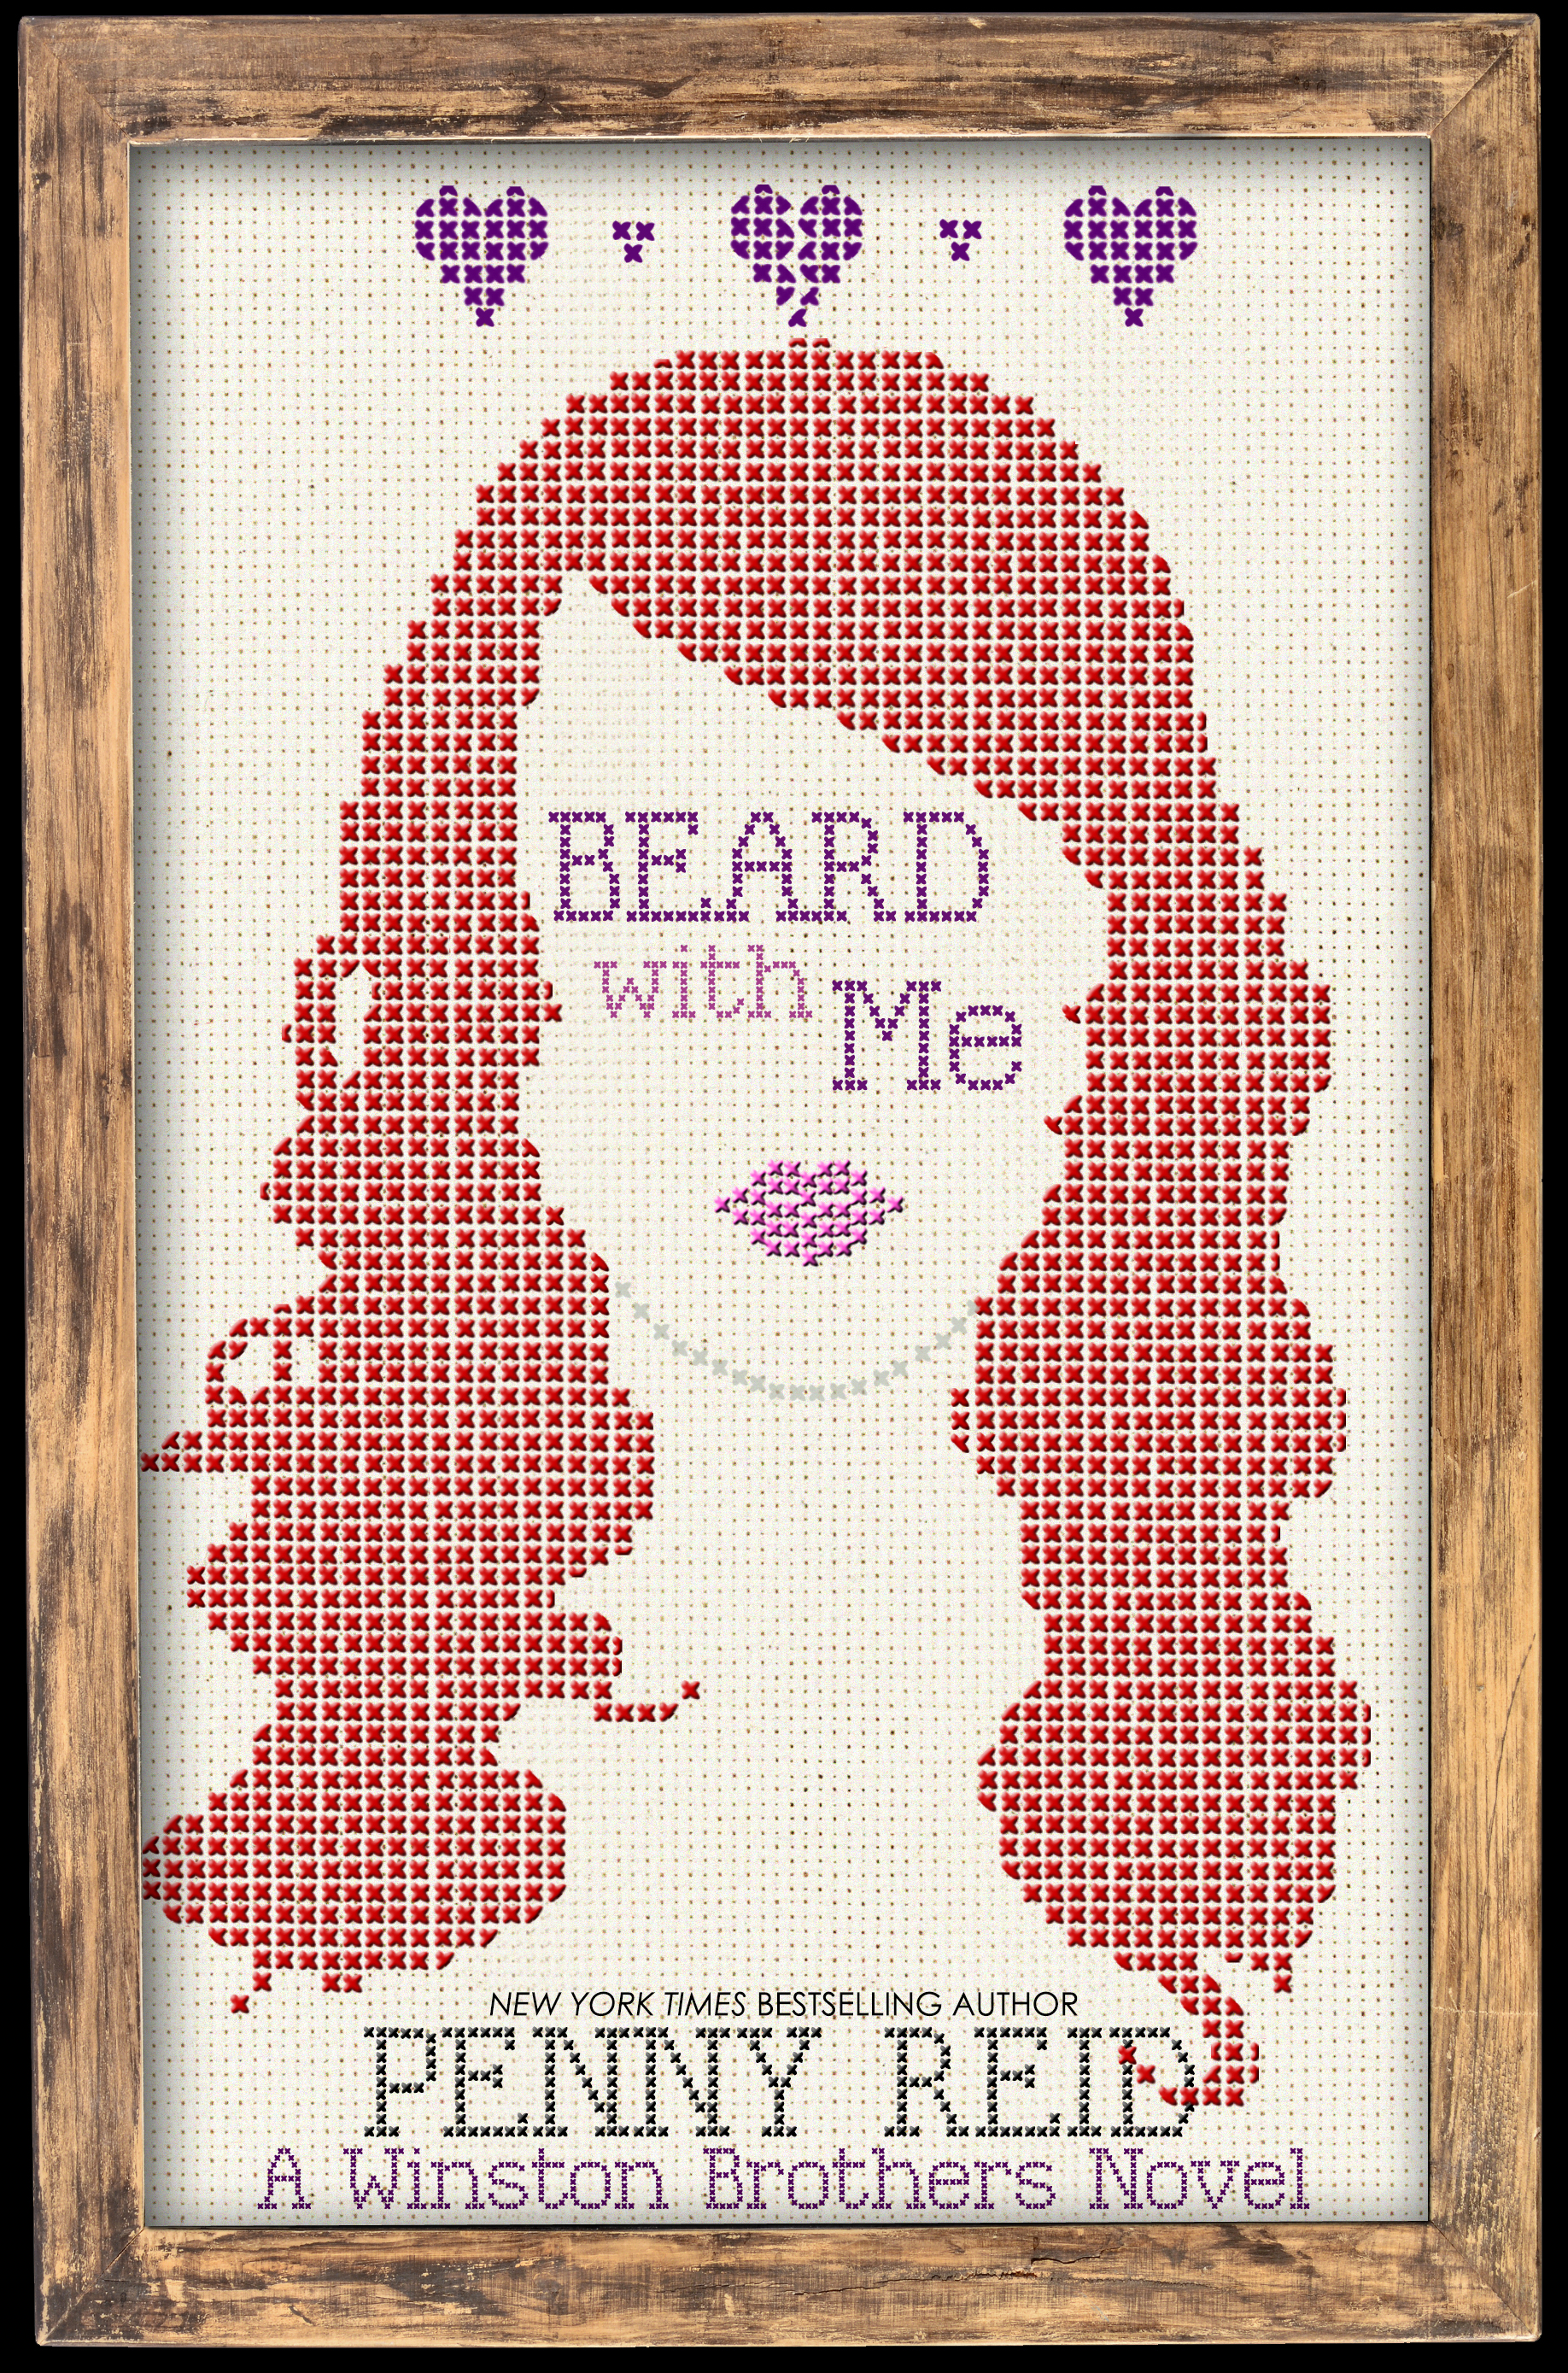 Beard with Me by Penny Reid Cover to Cover Book Blog Kat Snark covertocoverlit Book Blogger Book blog reader reading SmartyPants Romance Smart Romance Scarlet St. Claire Clair Billy Winston Winston Brothers Green Valley Pennyverse origin story childhood romance age difference homeless motorcycle club childhood abuse Literary Fiction Epic Love Story